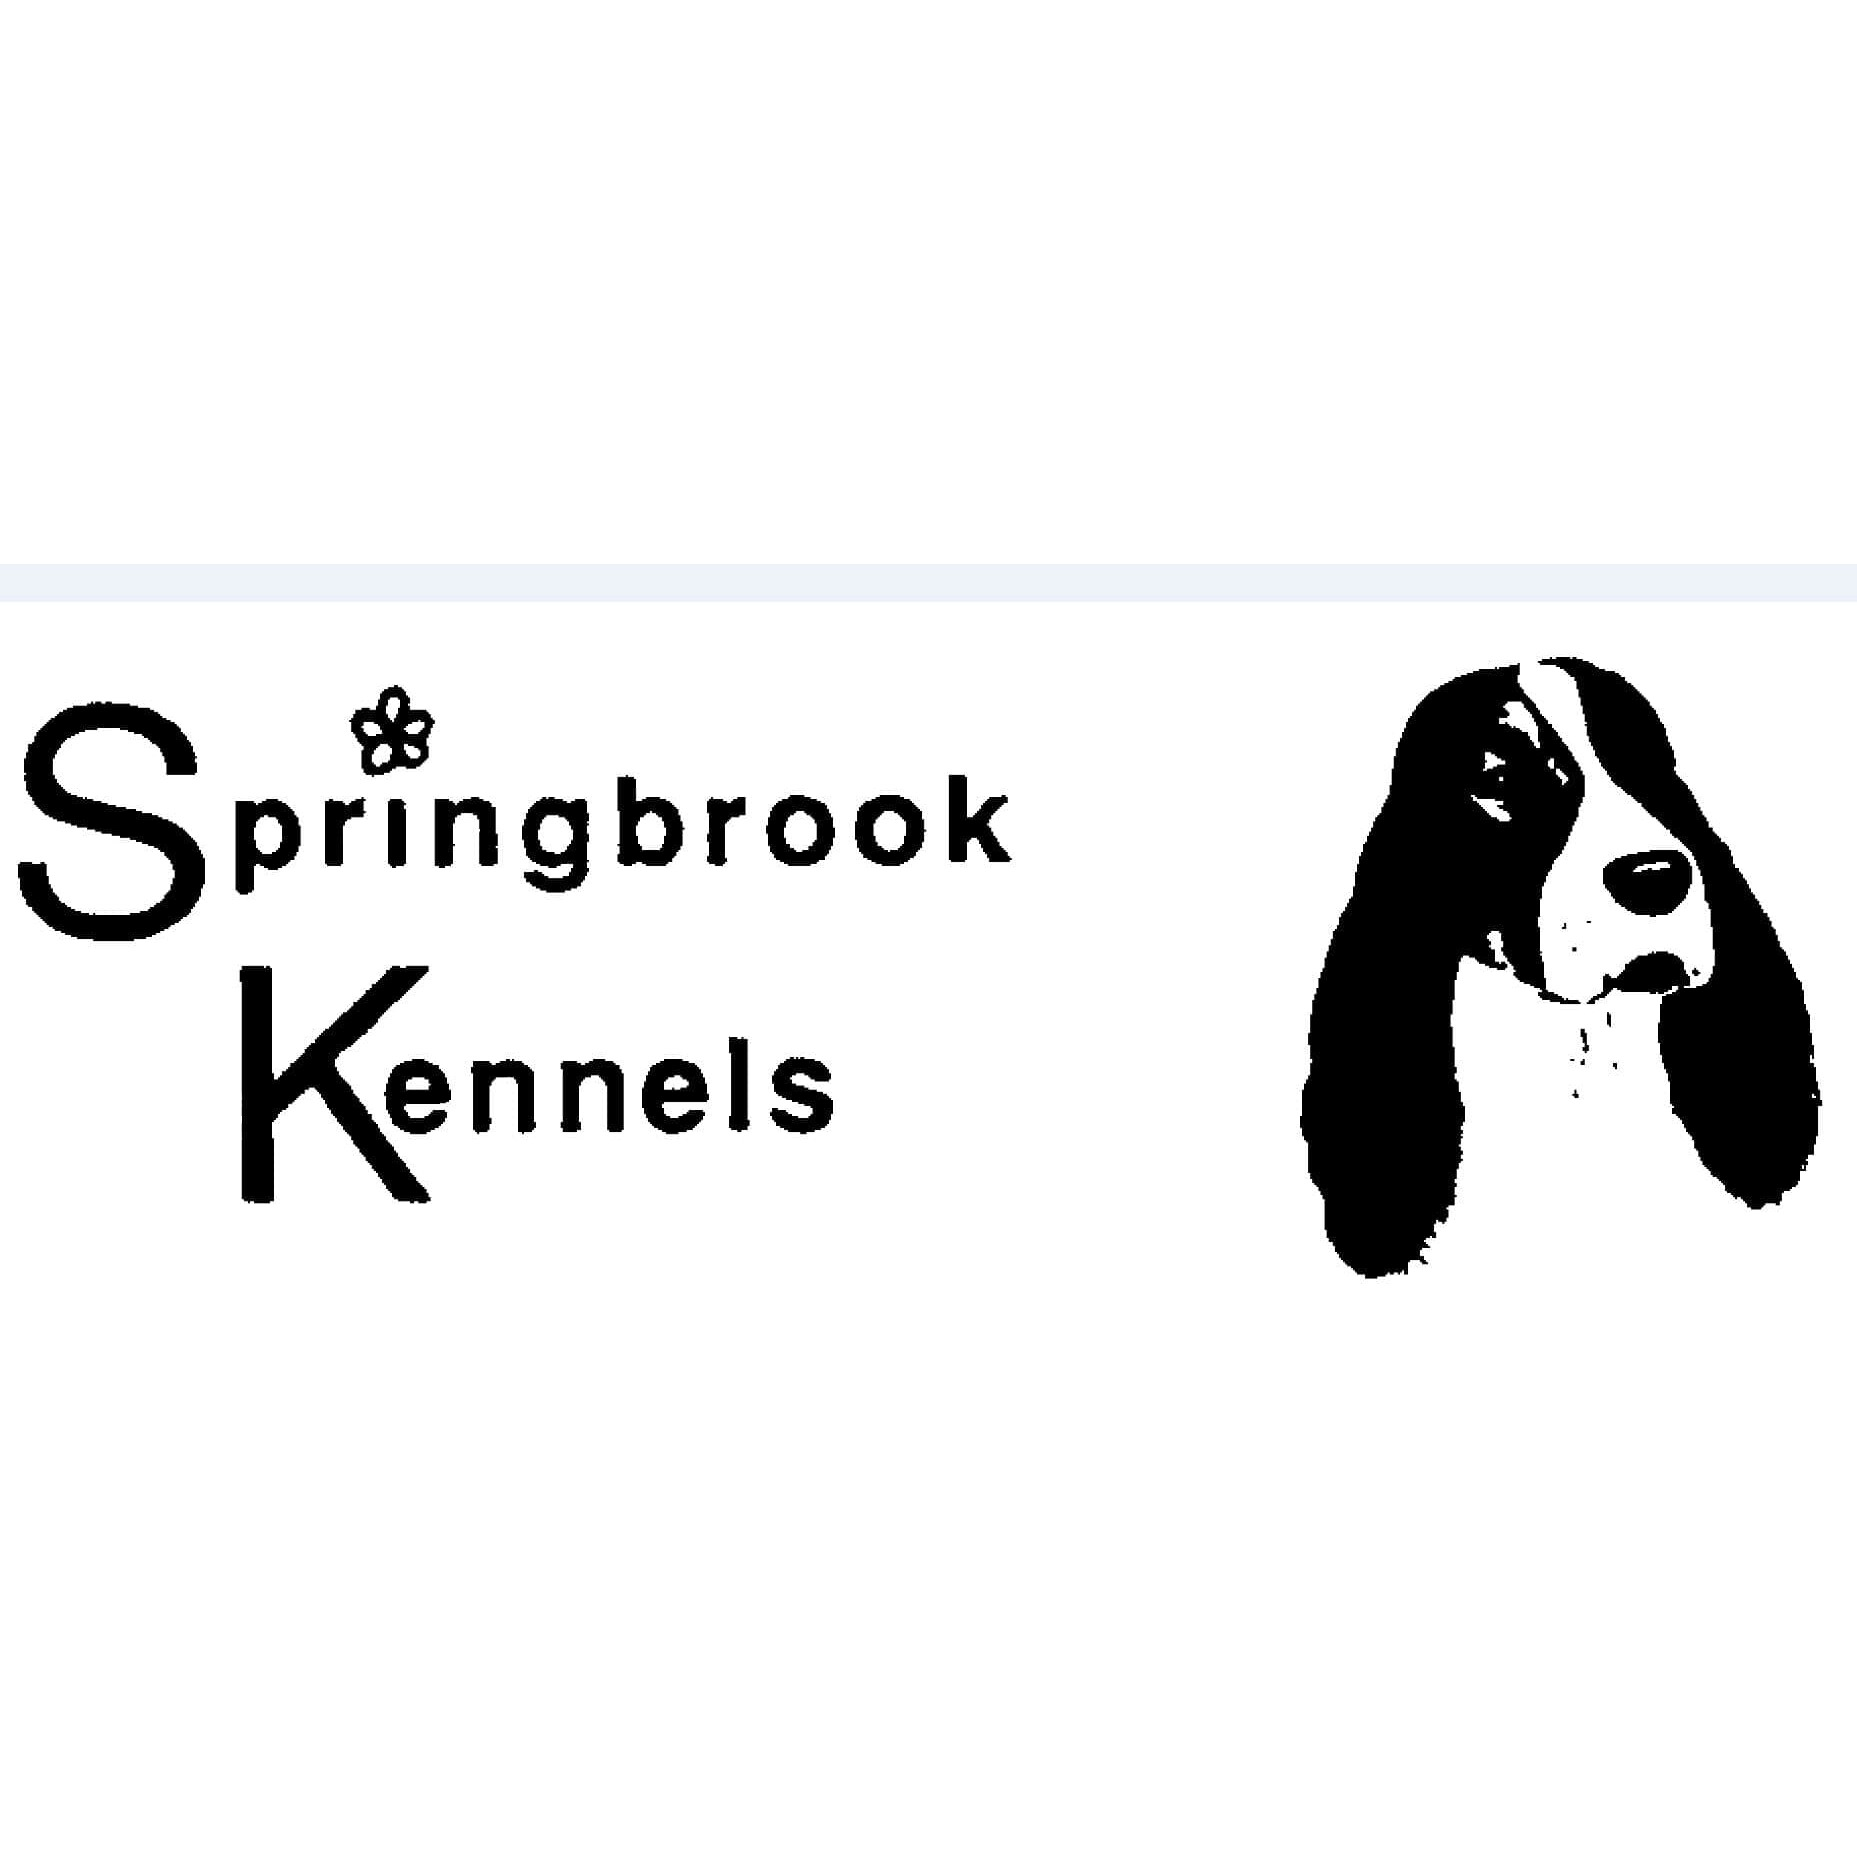 Springbrook Kennels